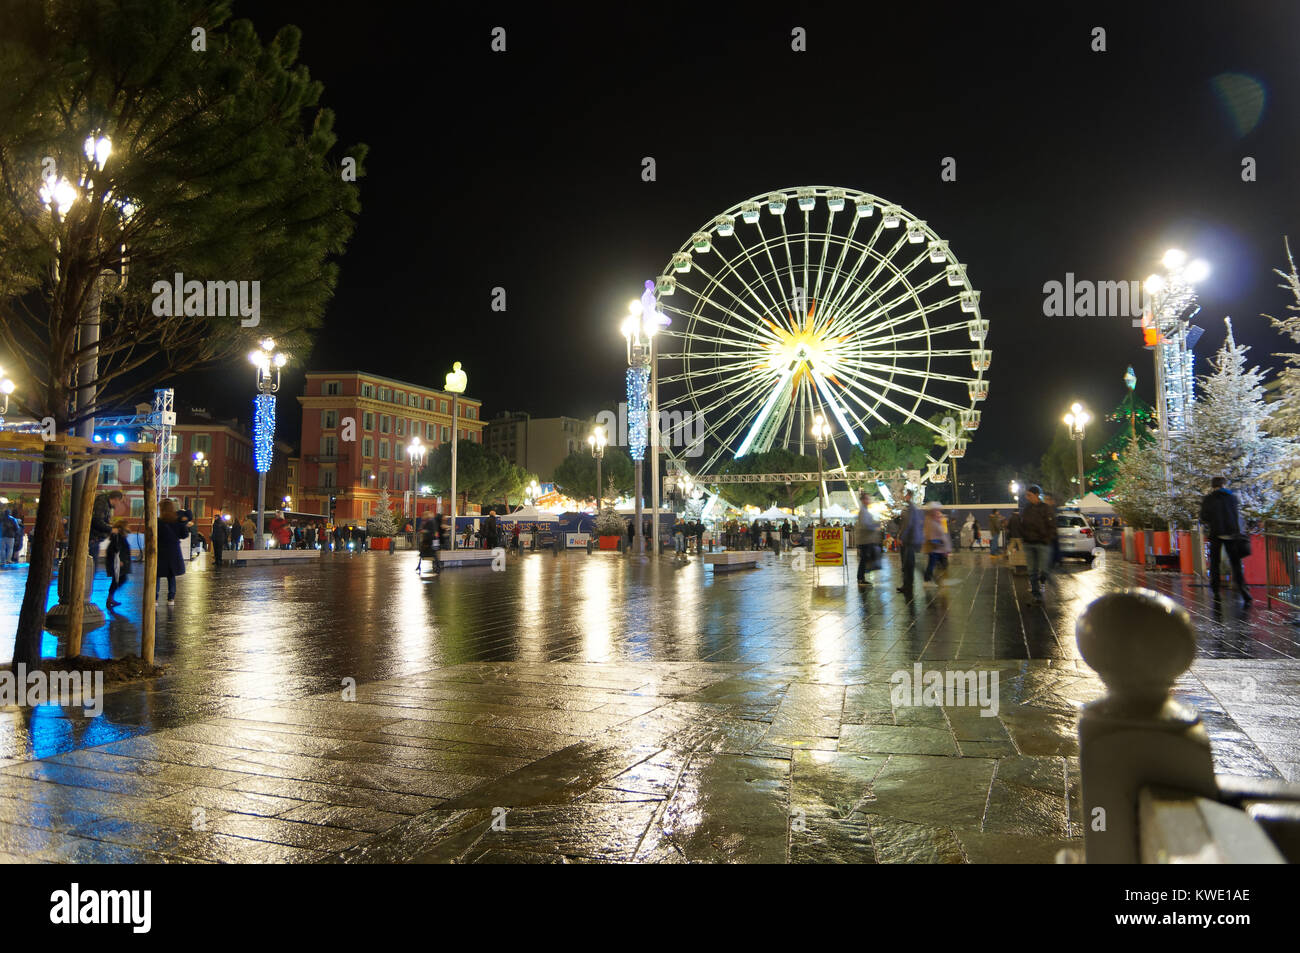 Ferris wheel in Nice, french riviera, at night during Christmas time - Stock Image